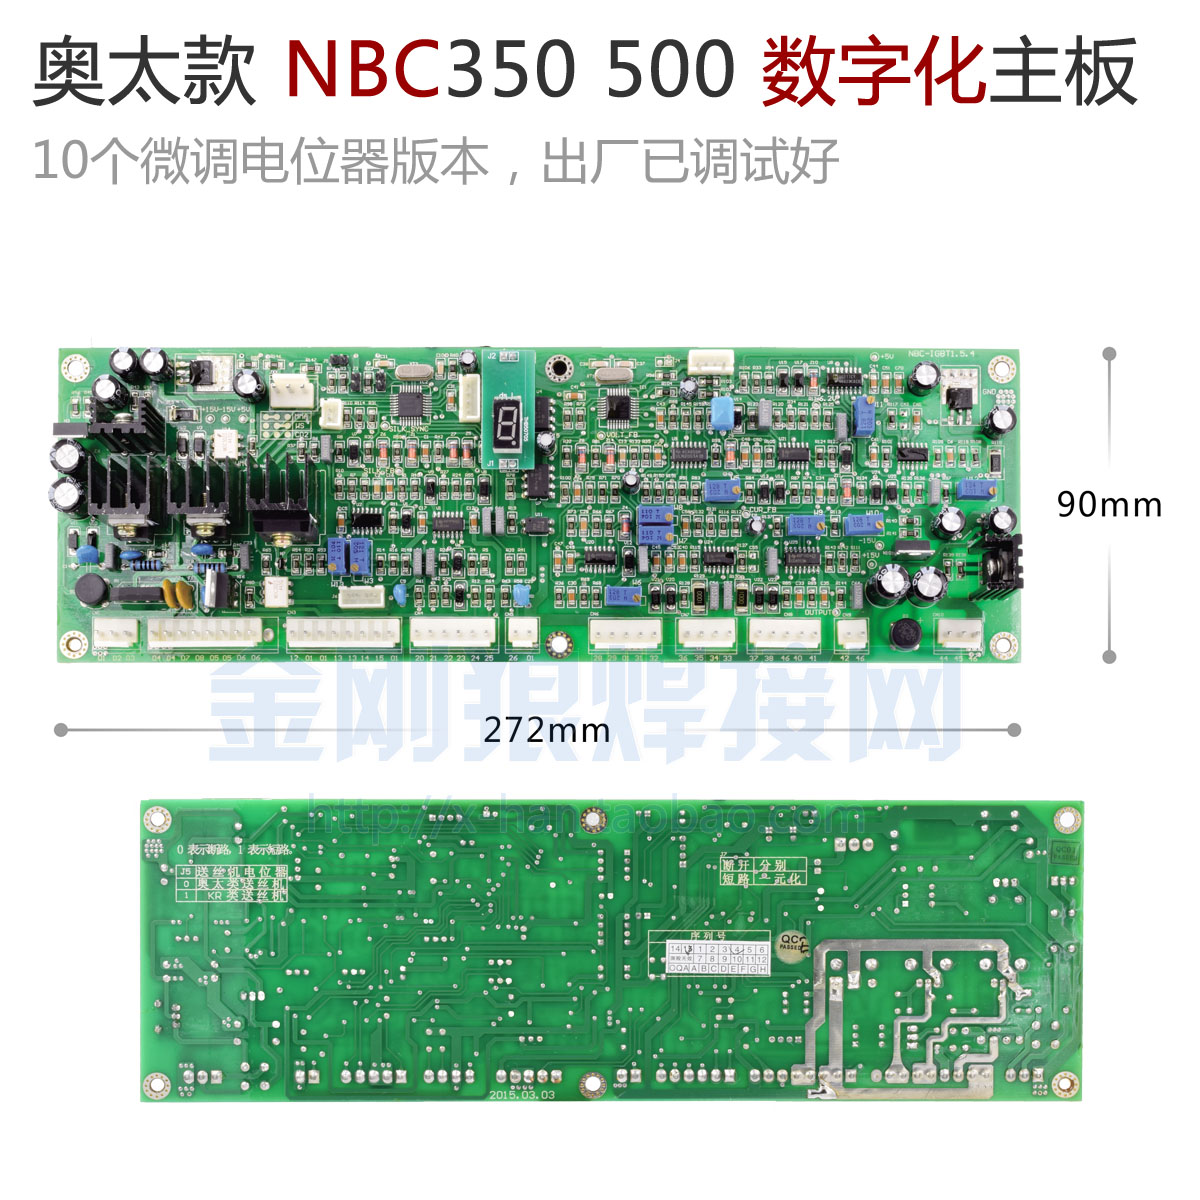 лучшая цена The Sun NBC350 500 Inverter IGBT Gas Welding Circuit Board of Digital Circuit Board with Welding